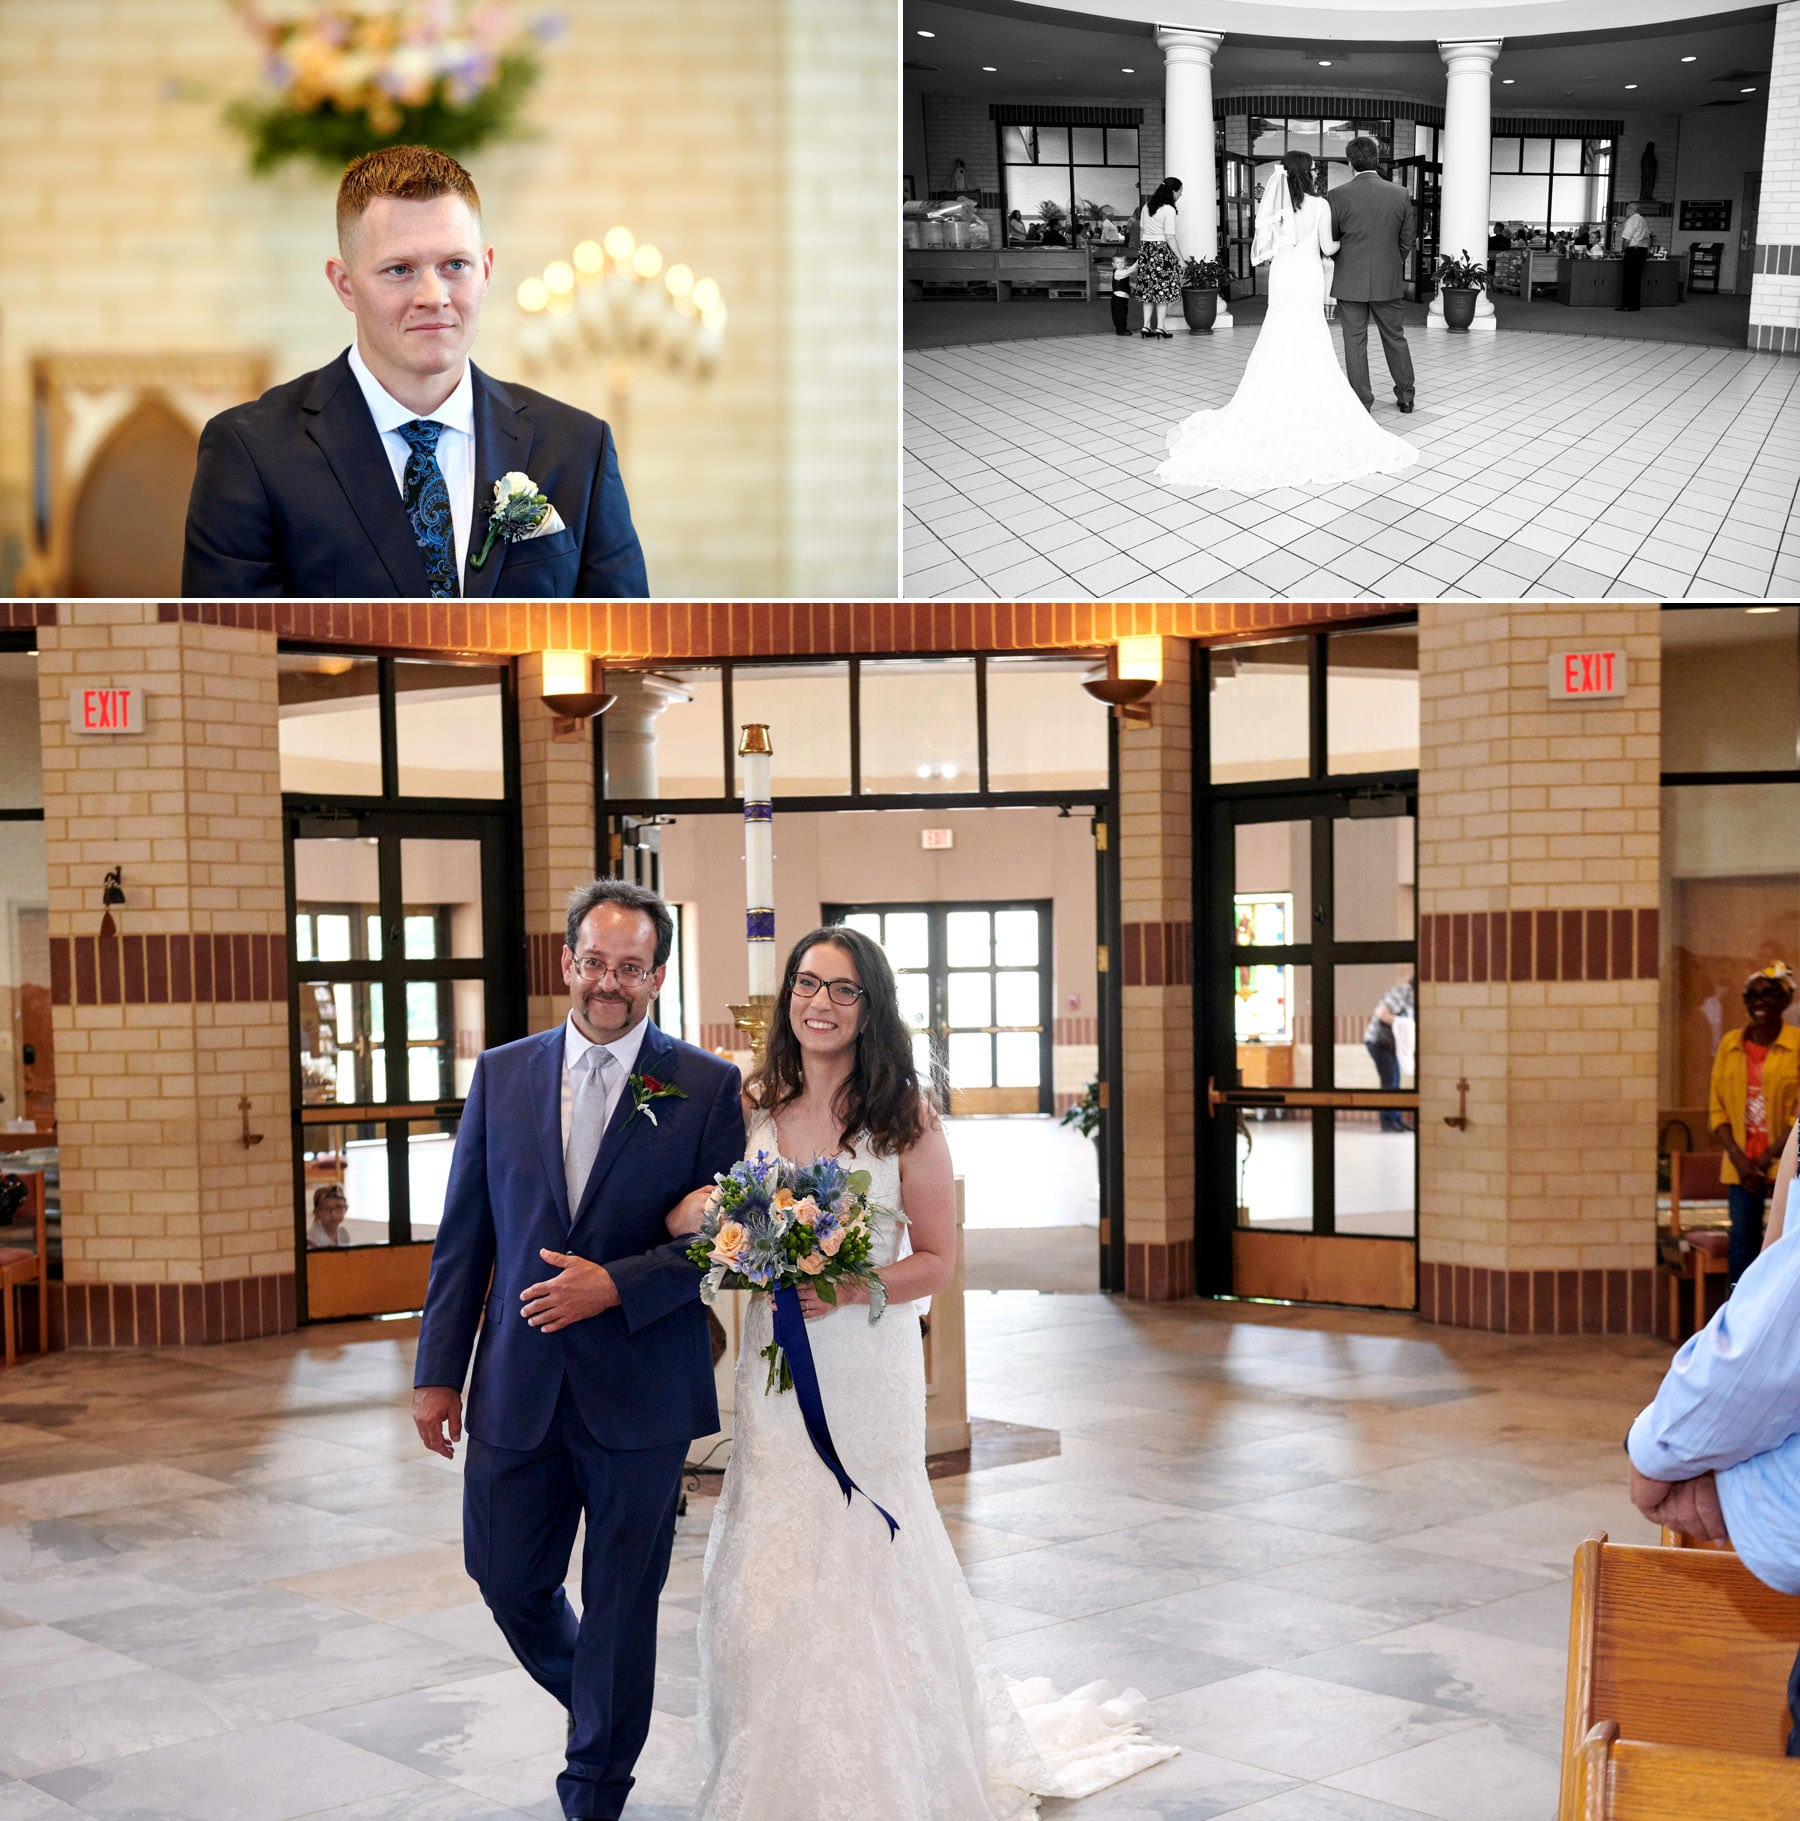 st magdalen flemington nj wedding